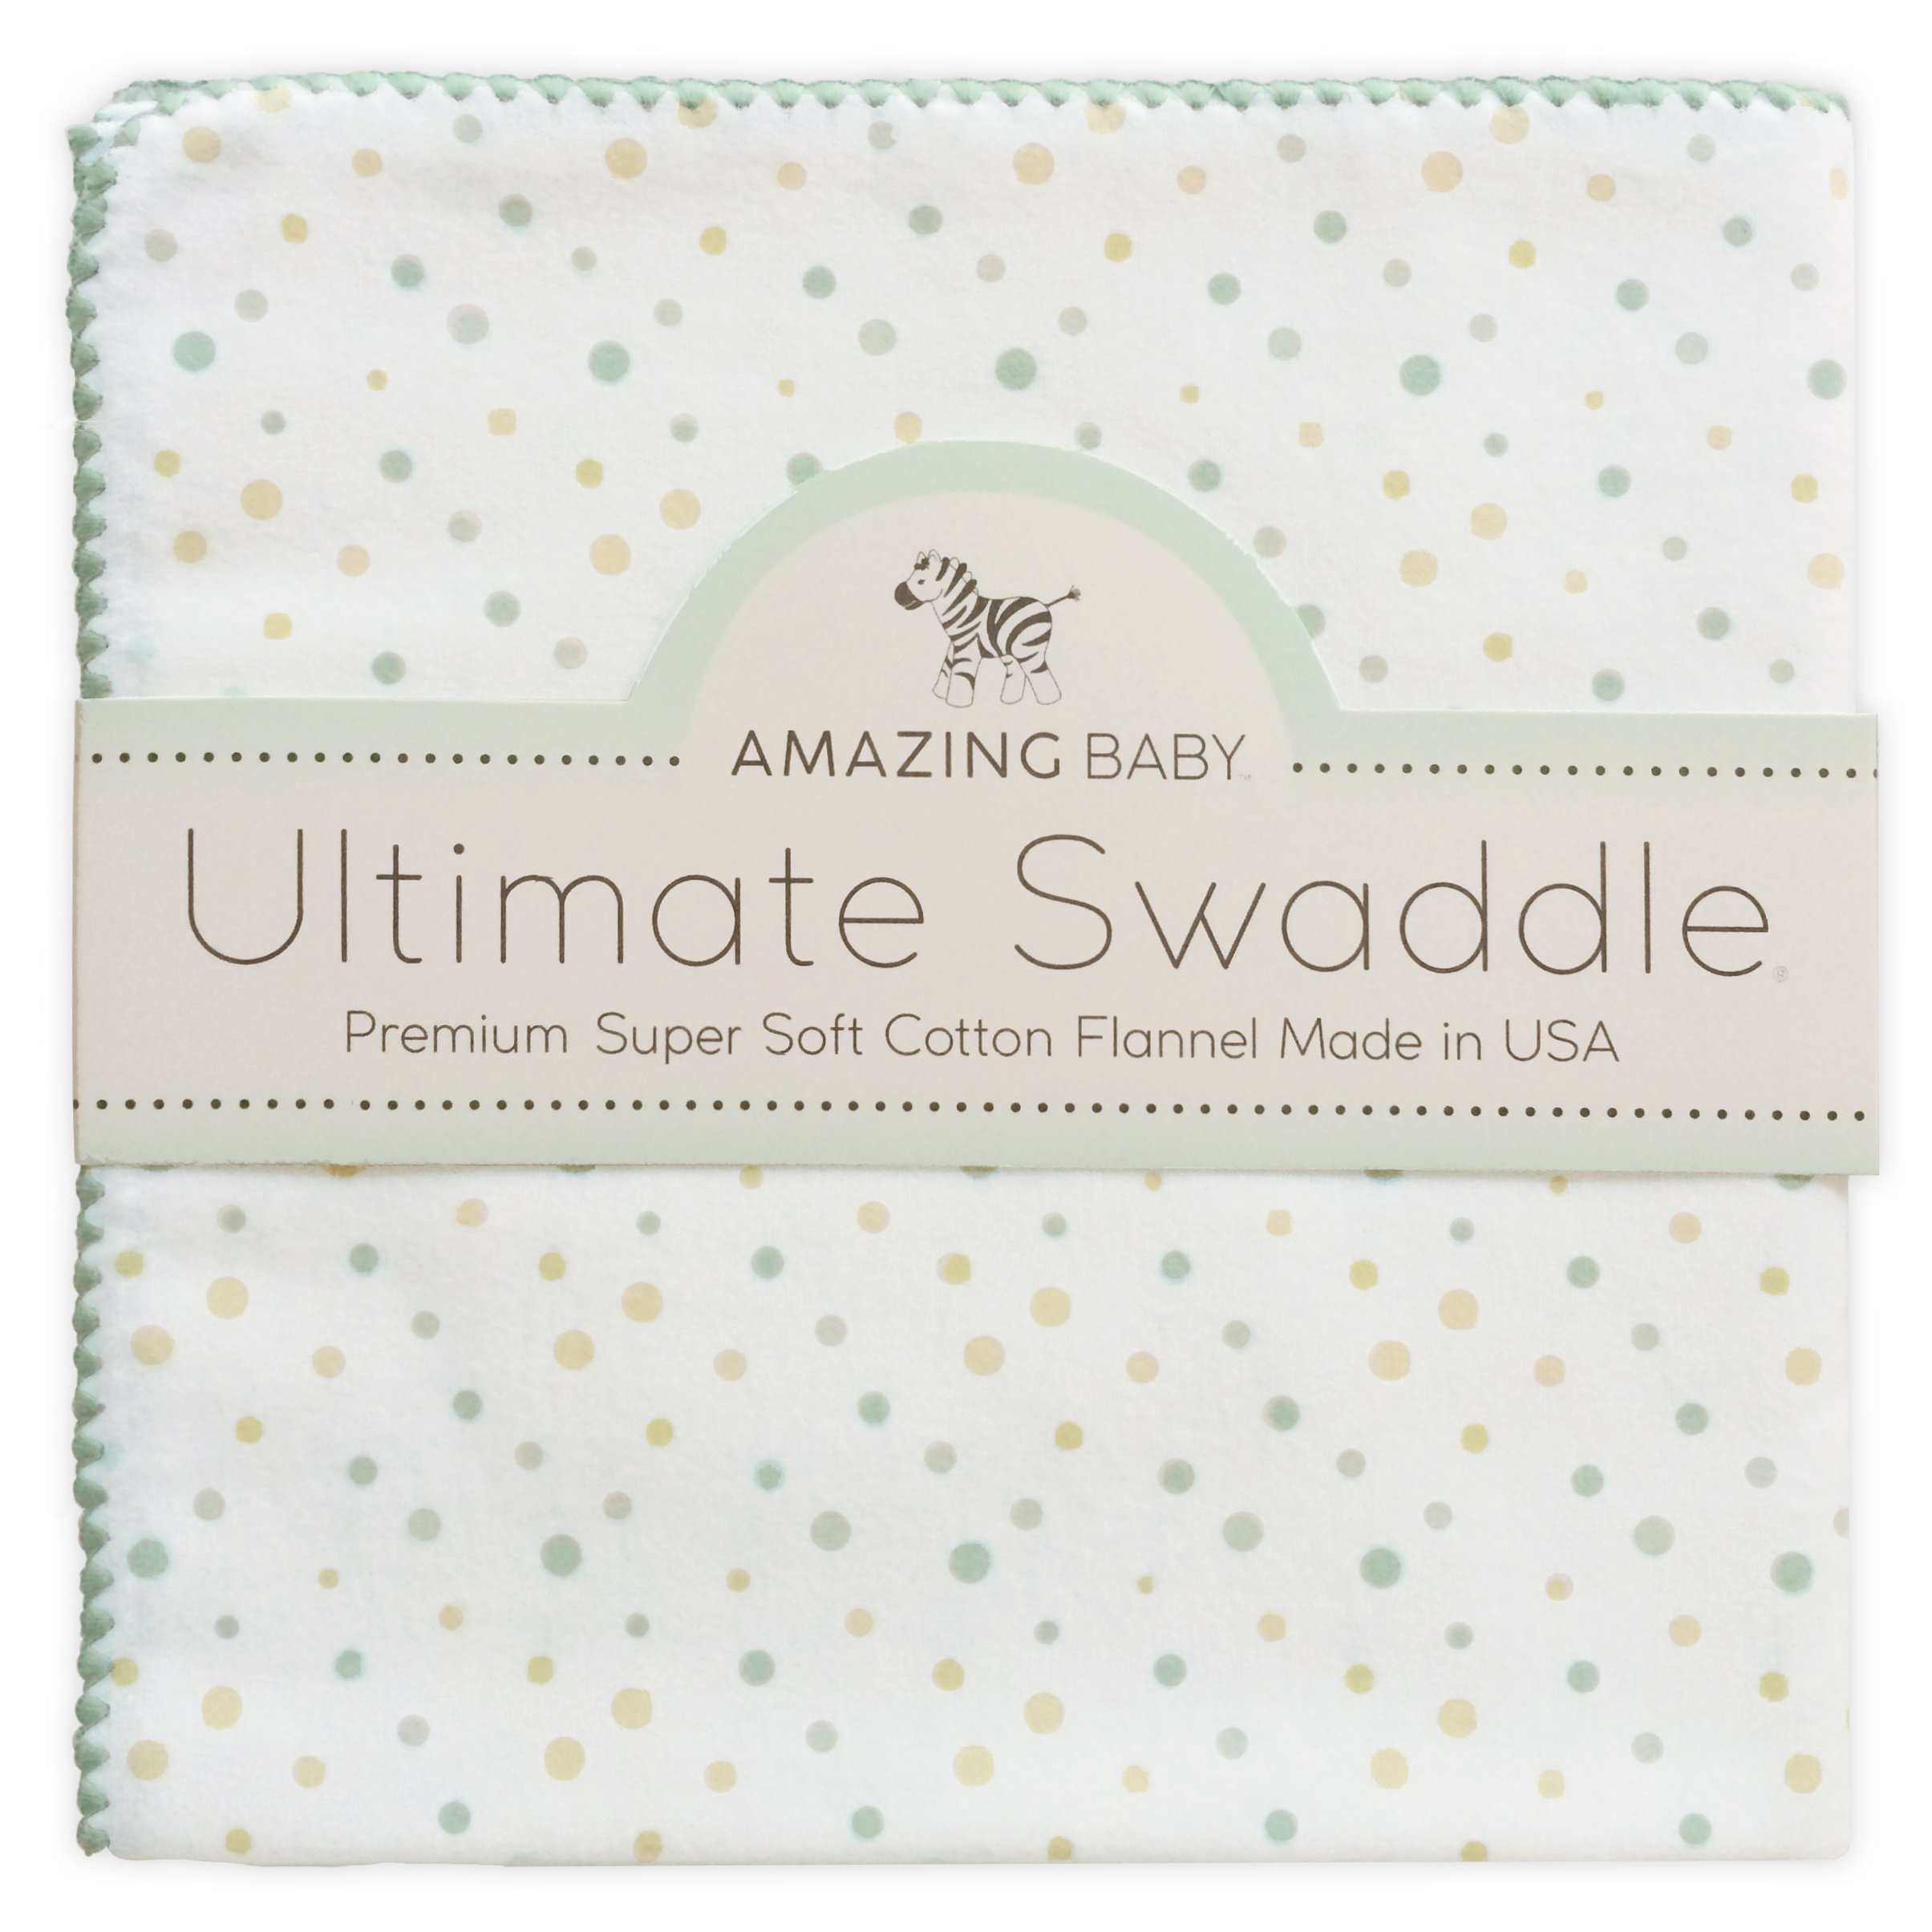 Amazing Baby Ultimate Swaddle, X-Large Receiving Blanket, Made in USA, Premium Cotton Flannel, Playful Dots, Multi SeaCrystal (Mom's Choice Award Winner)